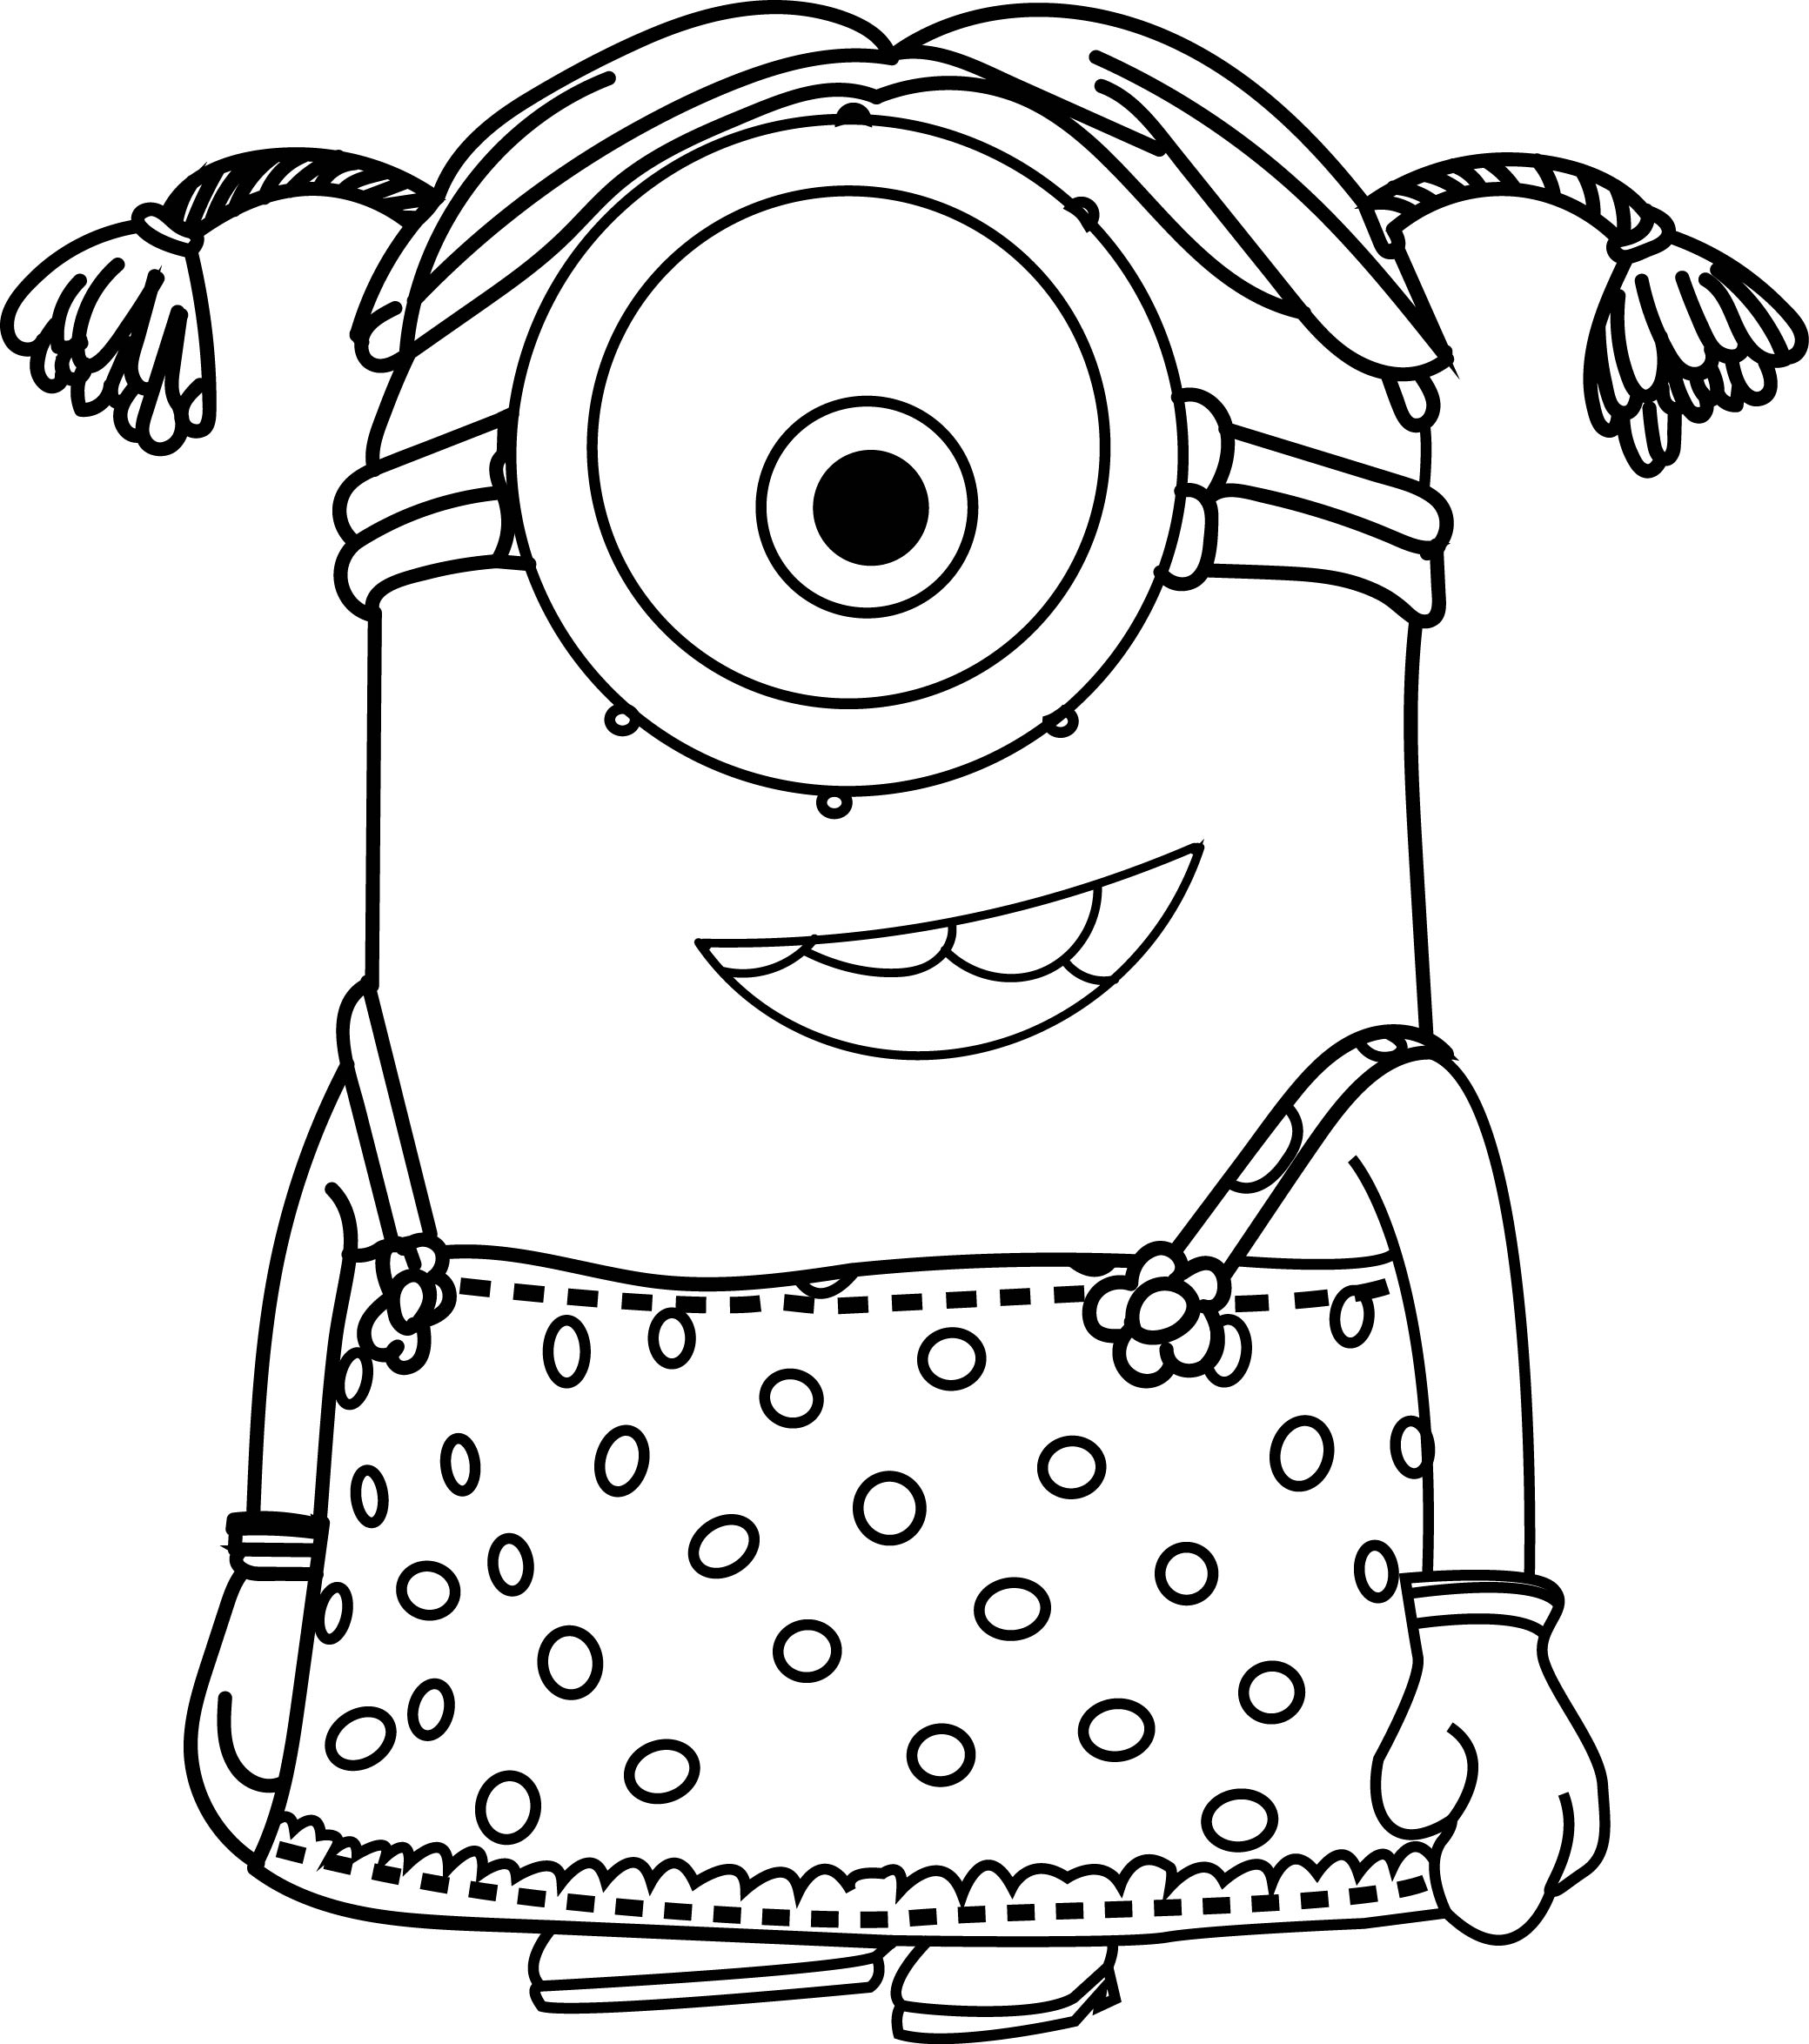 Baby Minion Coloring Pages At Getdrawings Free Download